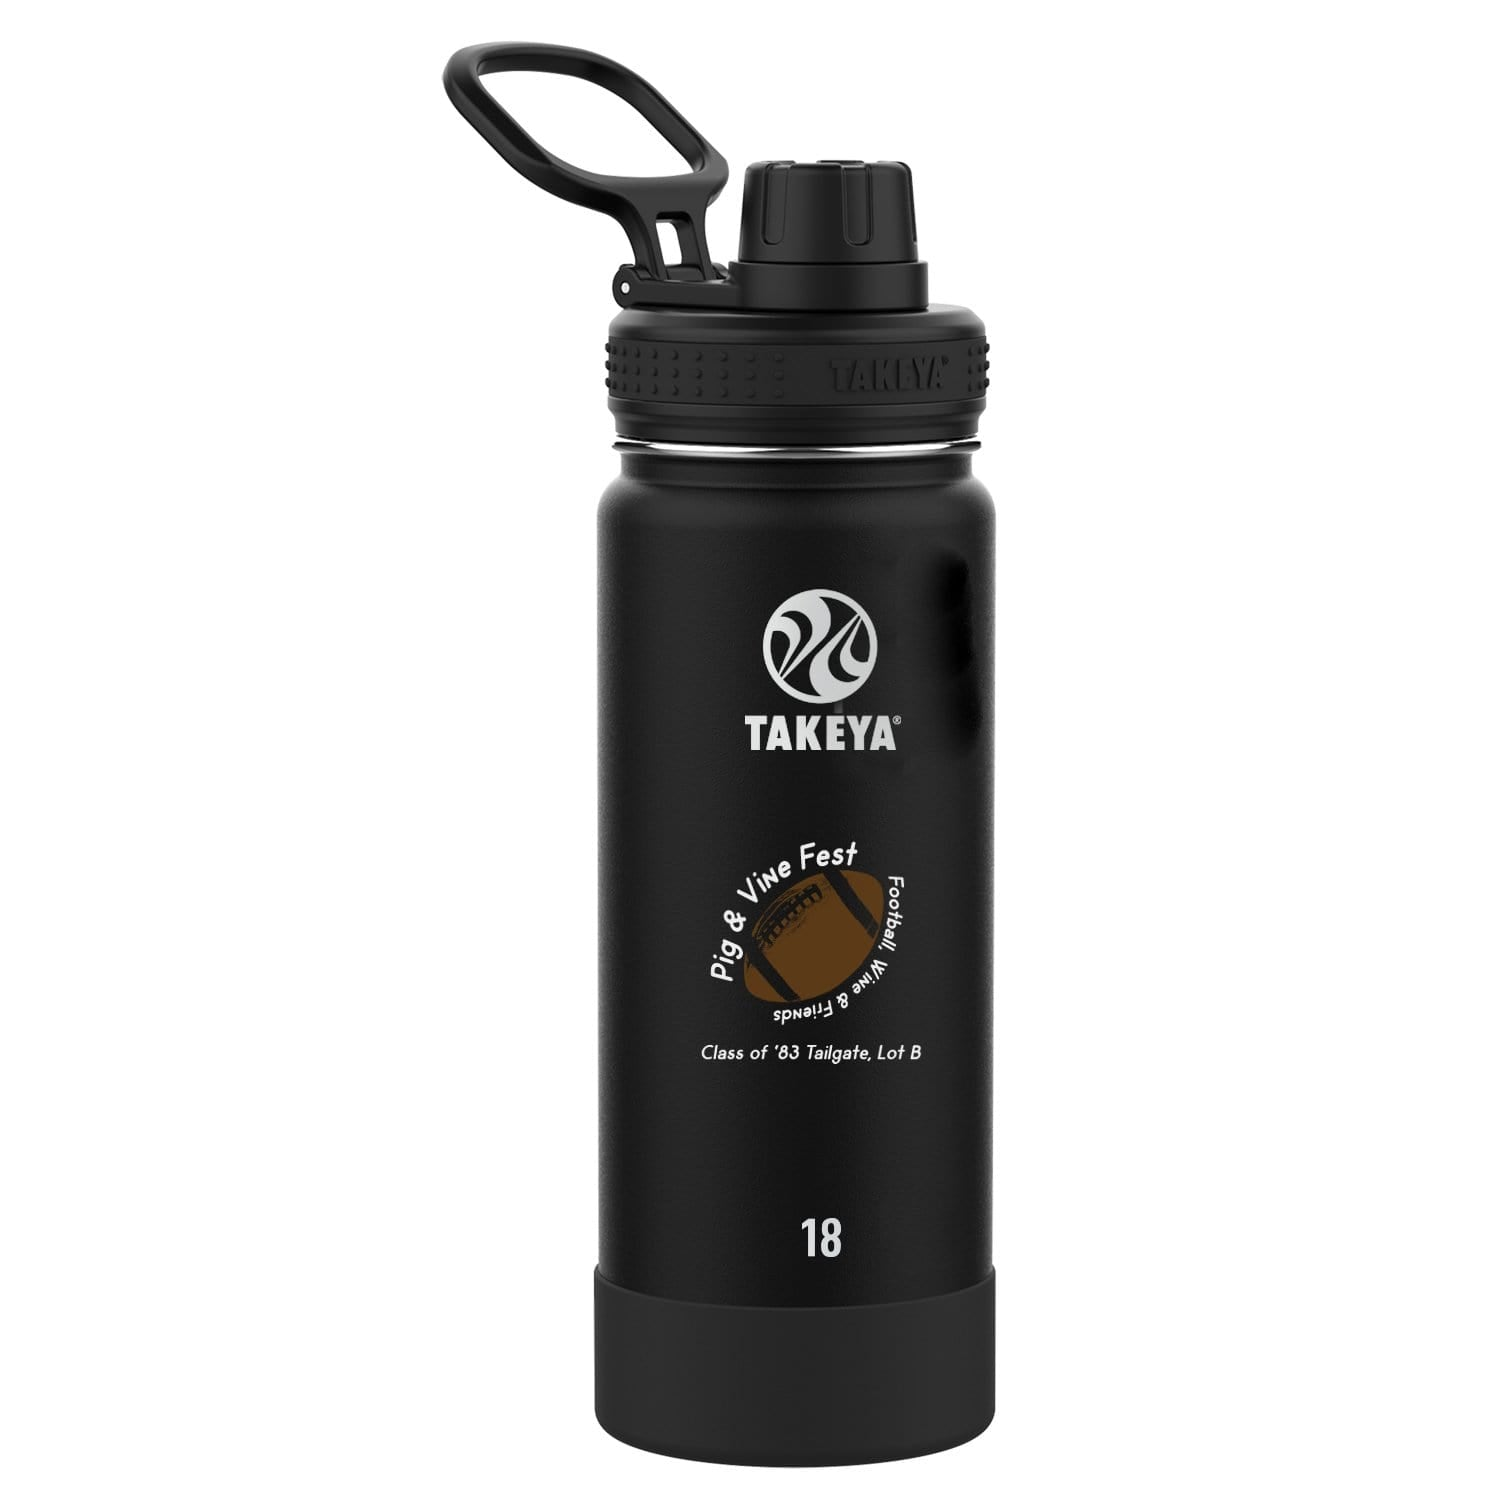 TAKEYA Accessories TAKEYA ACTIVES SPOUT LID 18 OZ